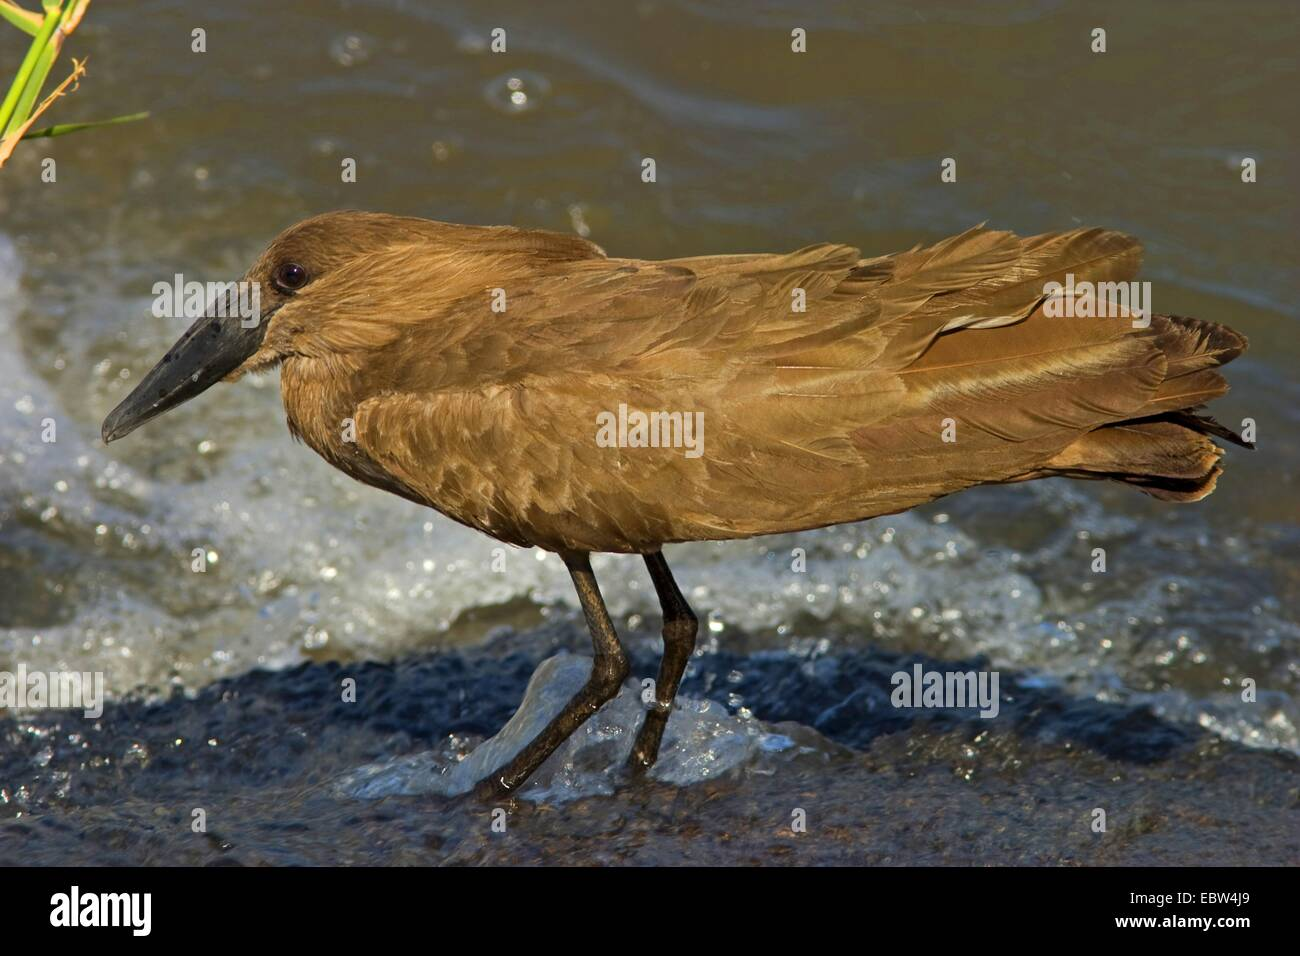 hammercop (Scopus umbretta), sitting on the waterfront, South Africa, Limpopo, Krueger National Park Stock Photo